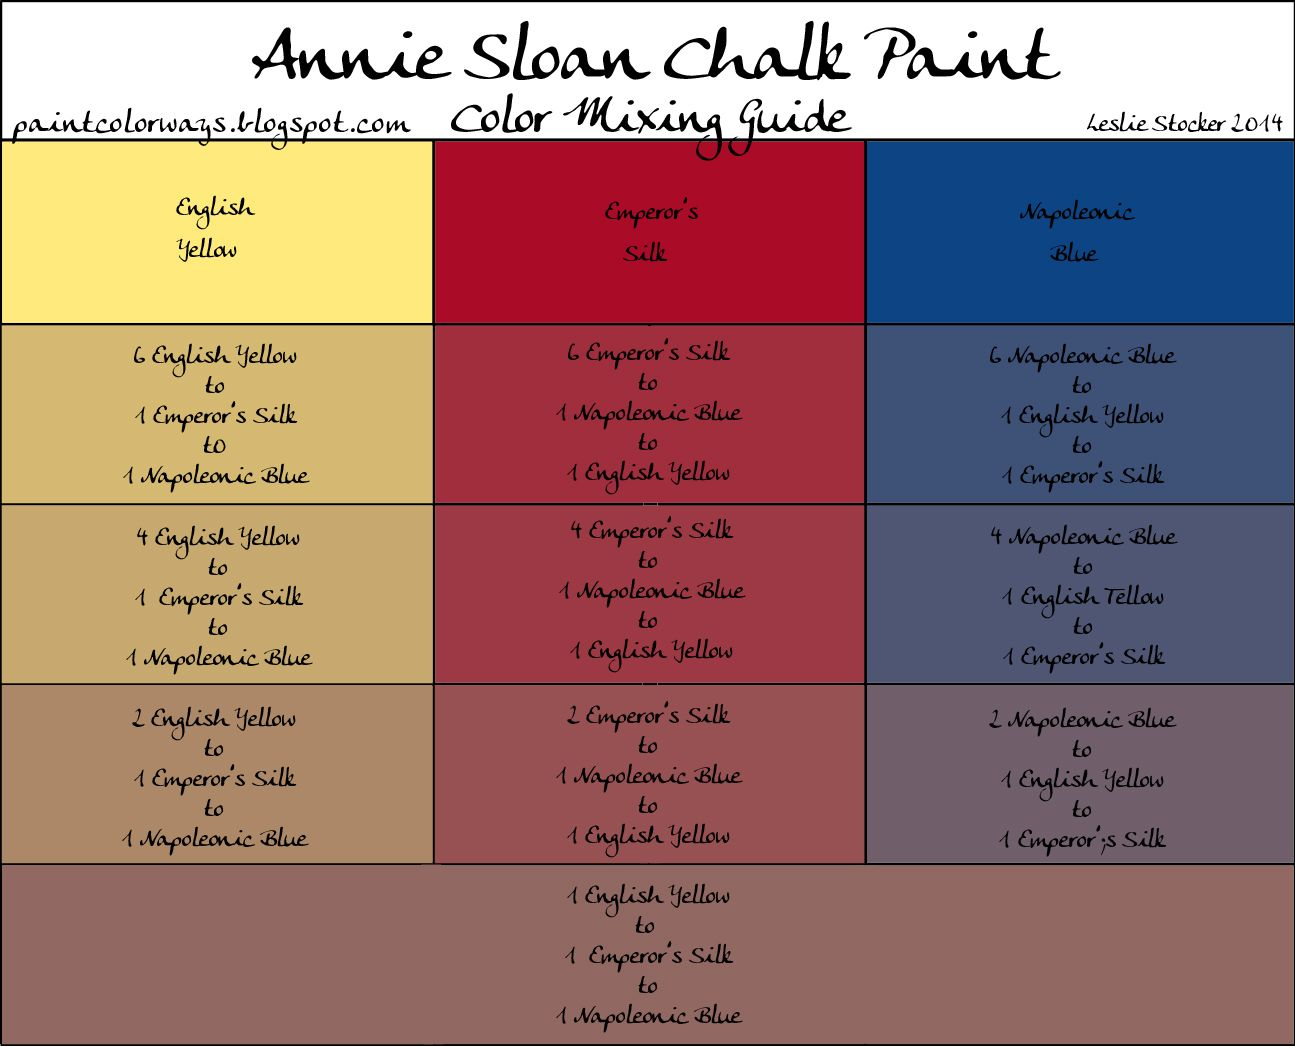 Colors of annie sloan chalk paint - Colorways Annie Sloan Chalk Paint Custom Color Recipe Mixing Guide Emperor S Silk English Yellow